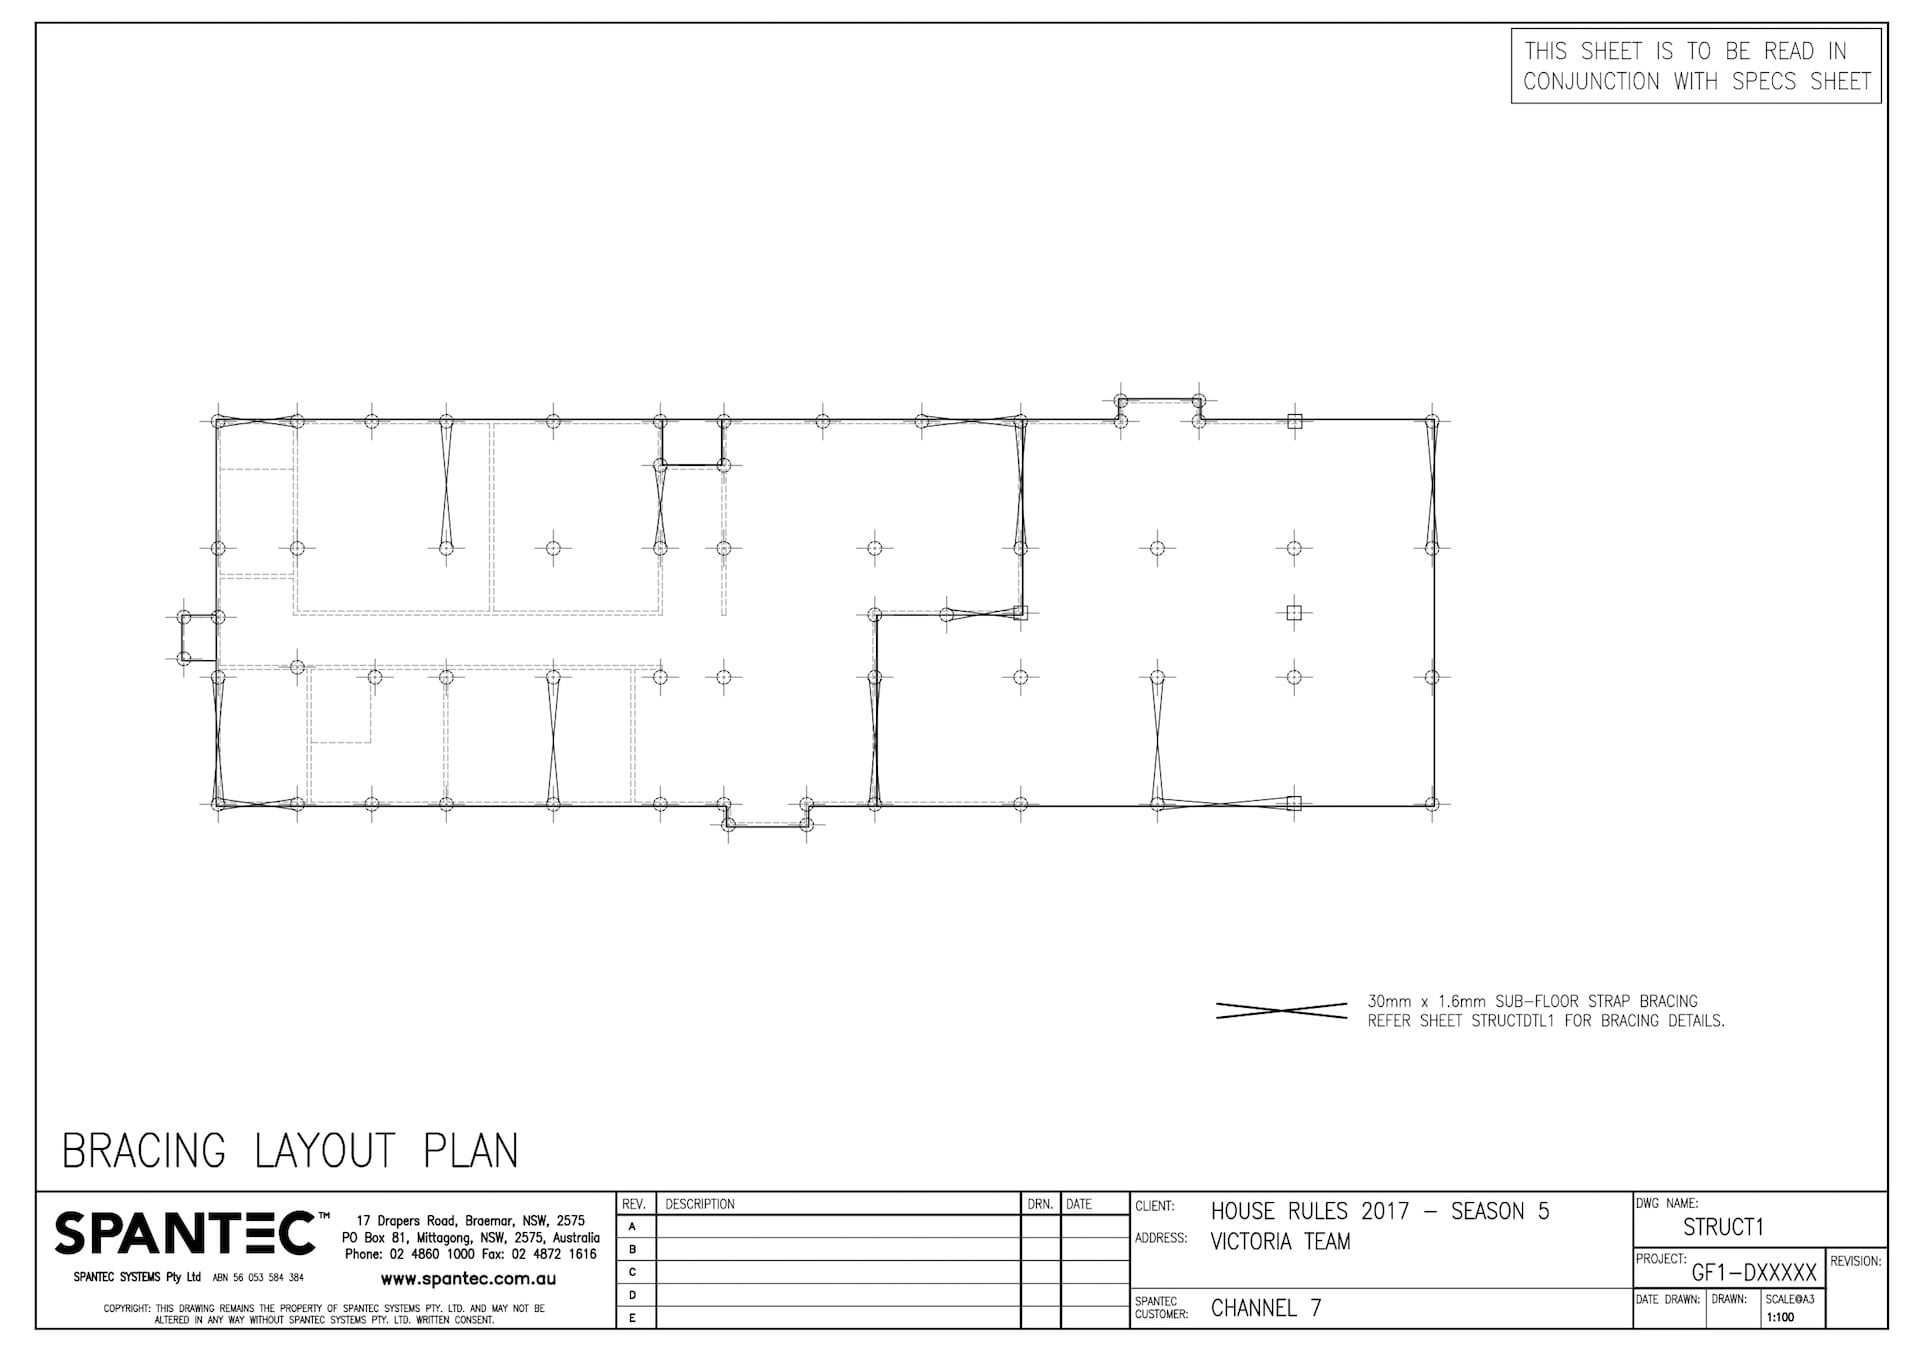 Bracing Layout Plan